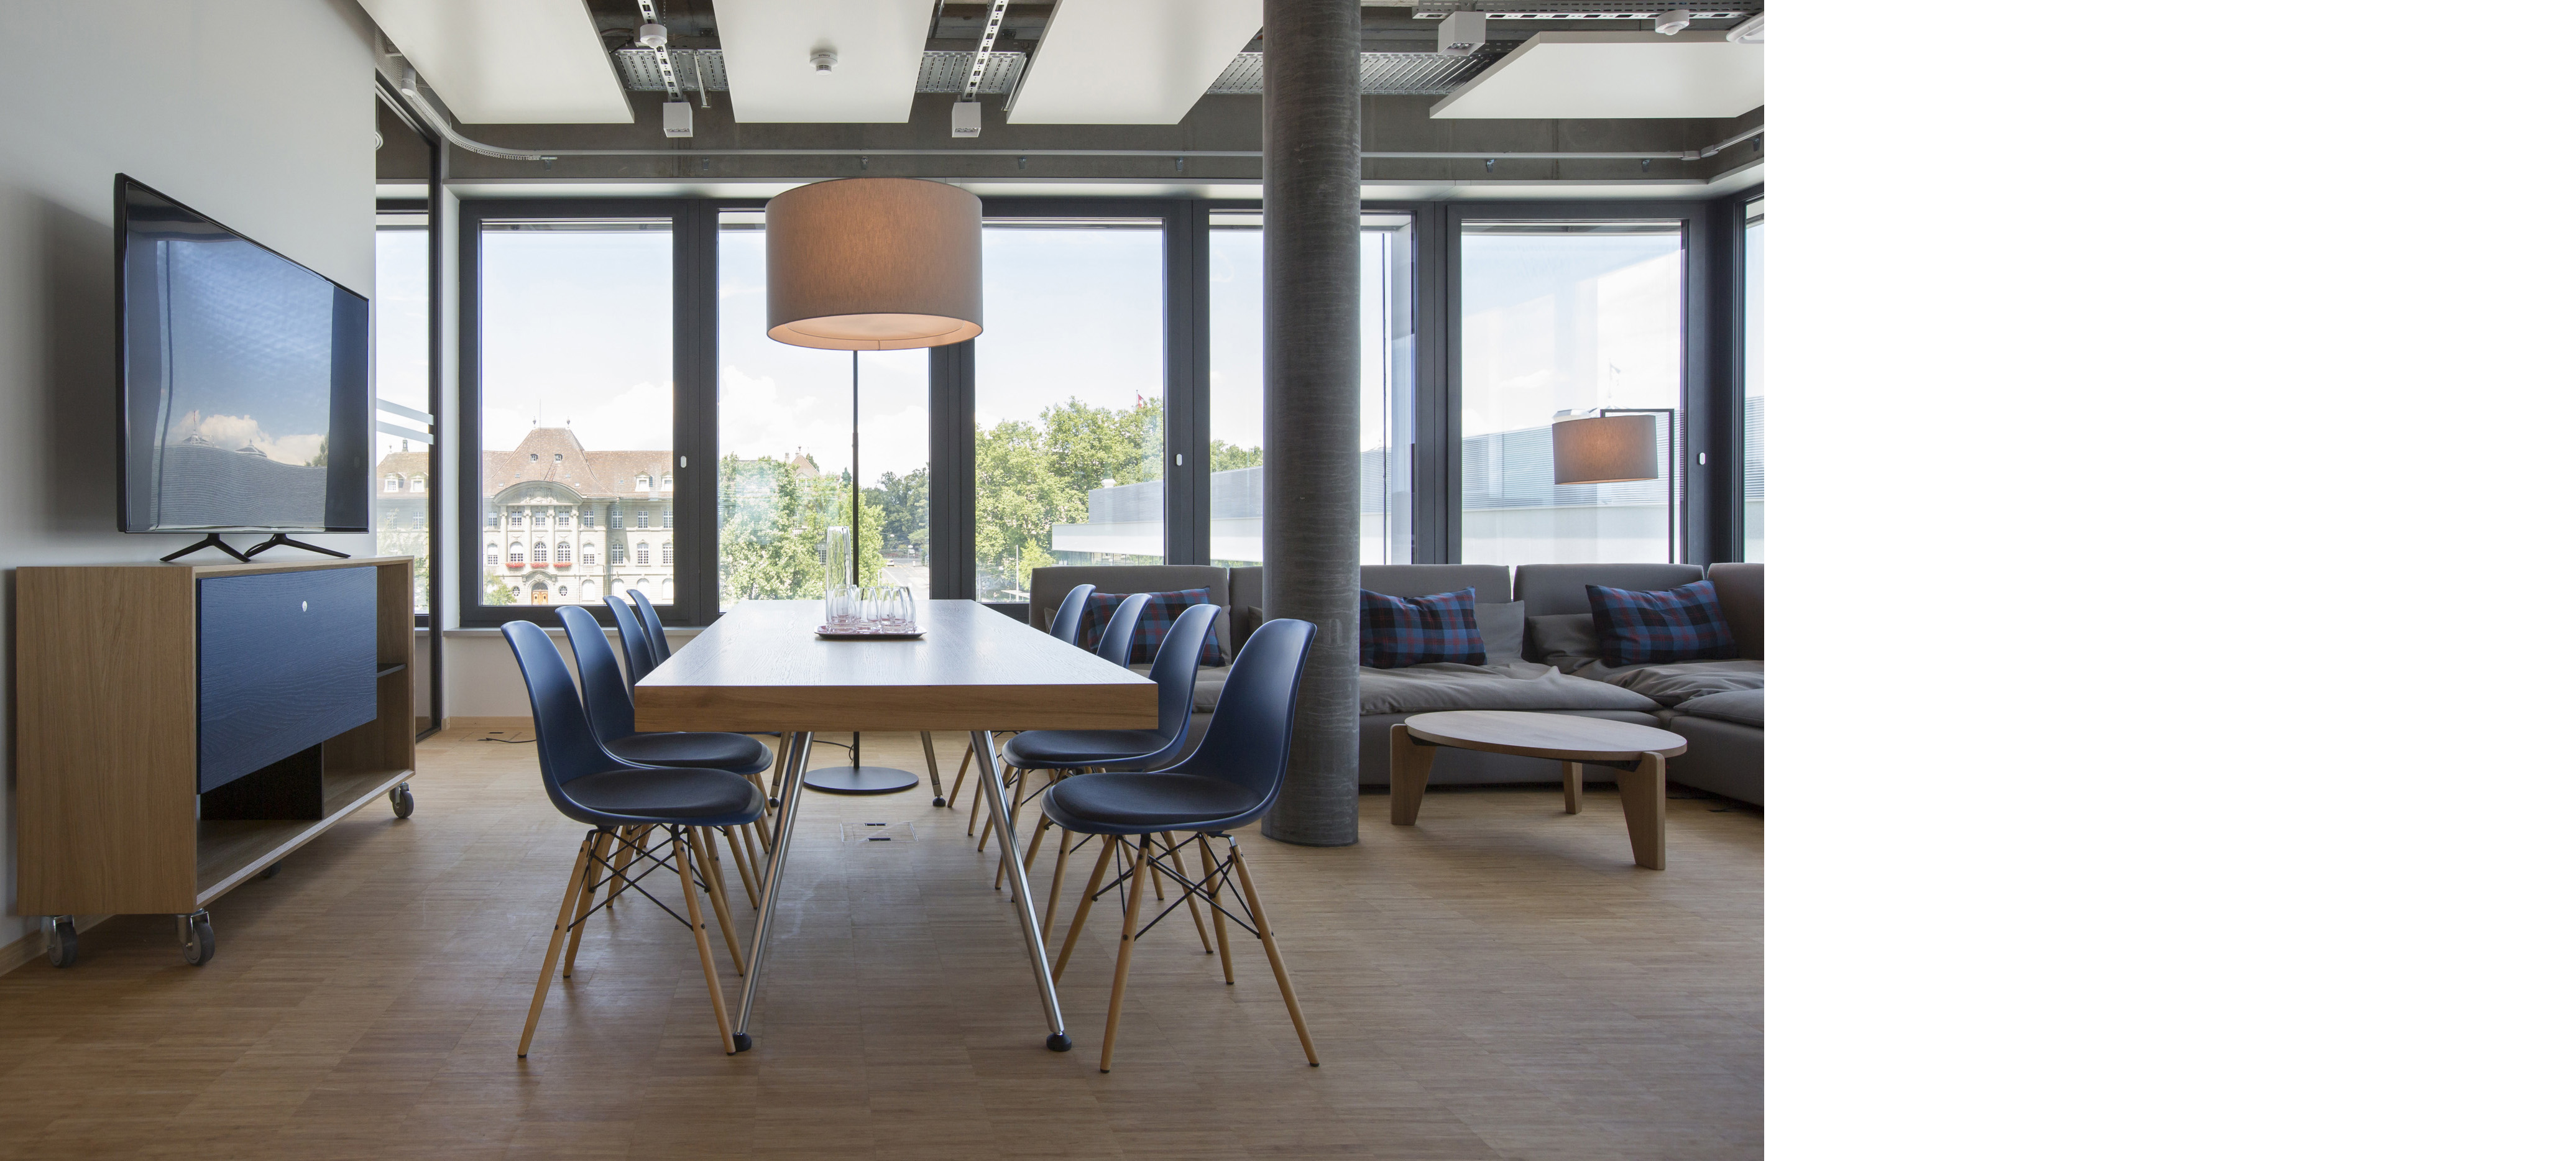 Workspace Meetingraum Welle 7 Bern